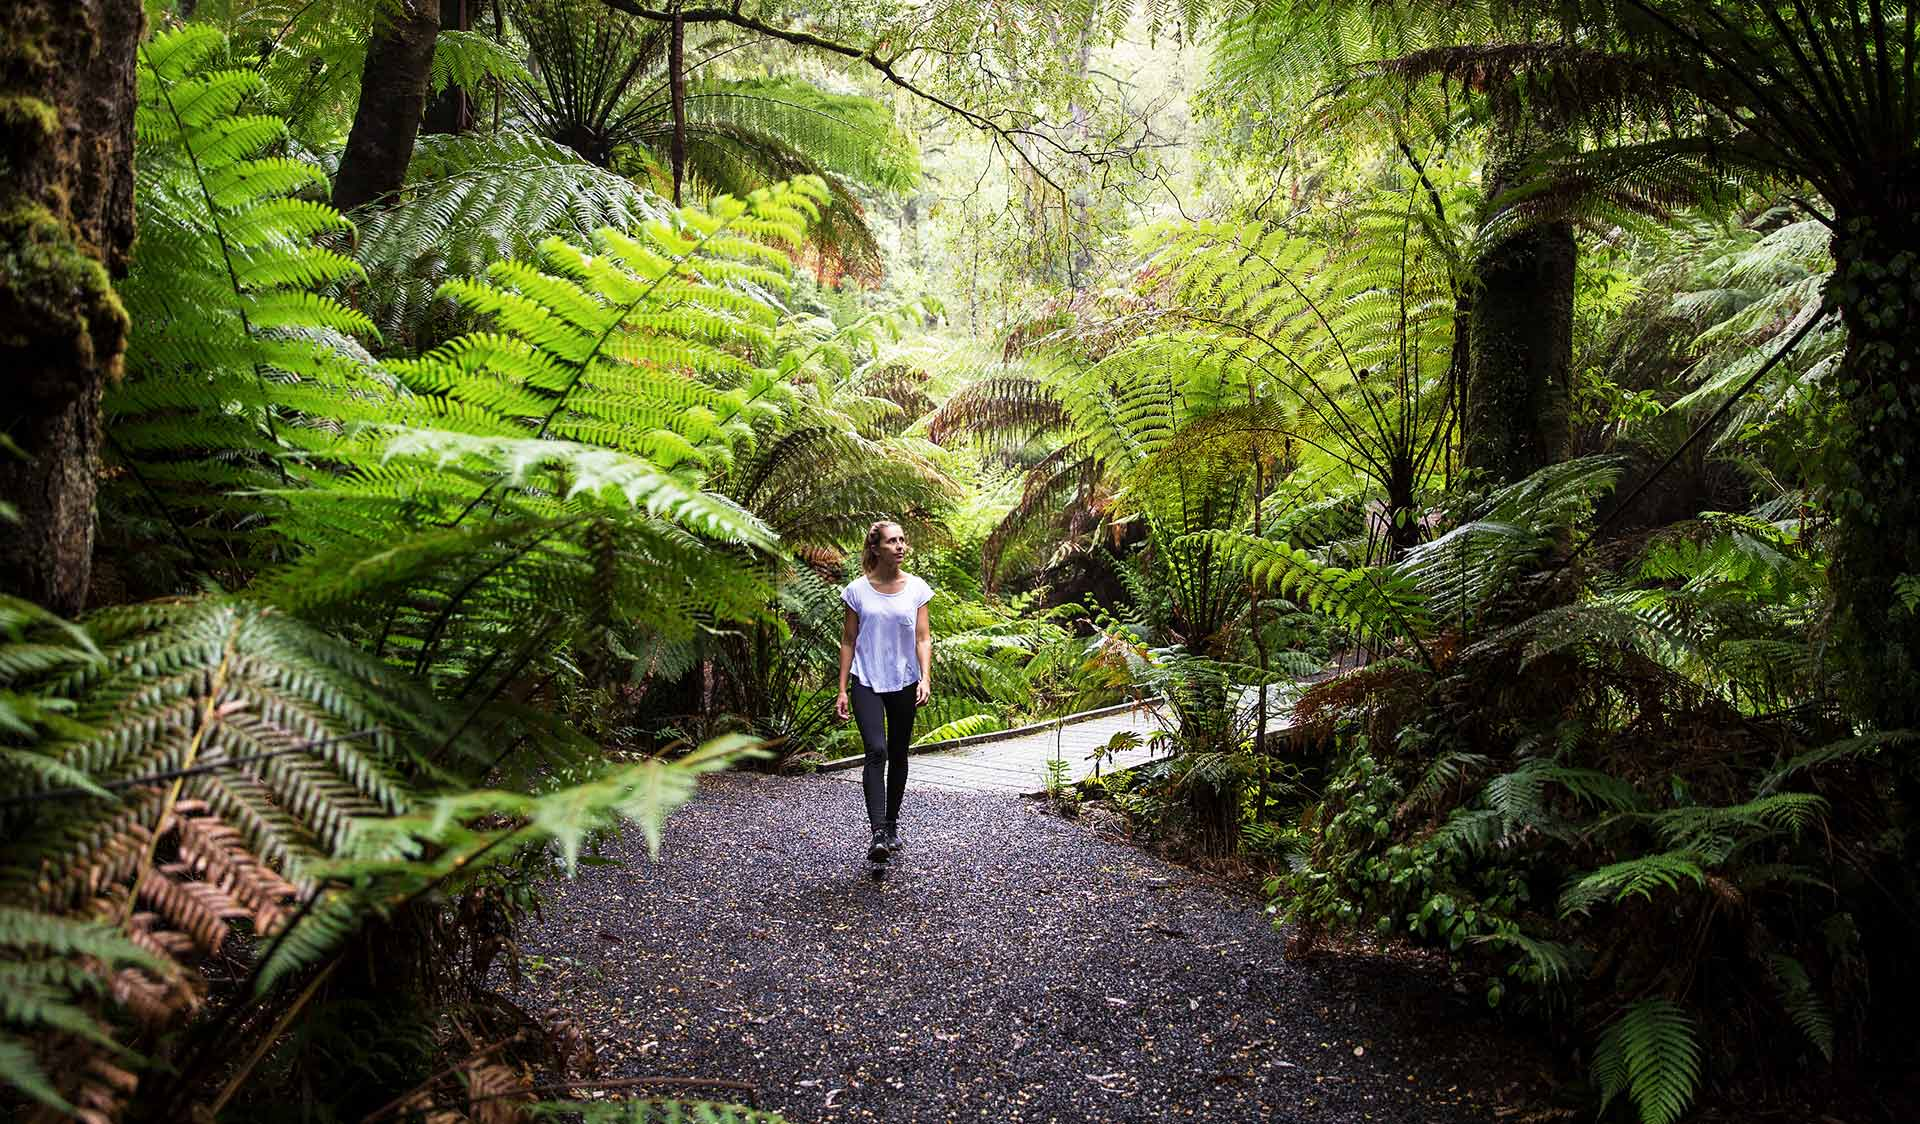 A woman walks through a path at Tarra-Bulga National Park.